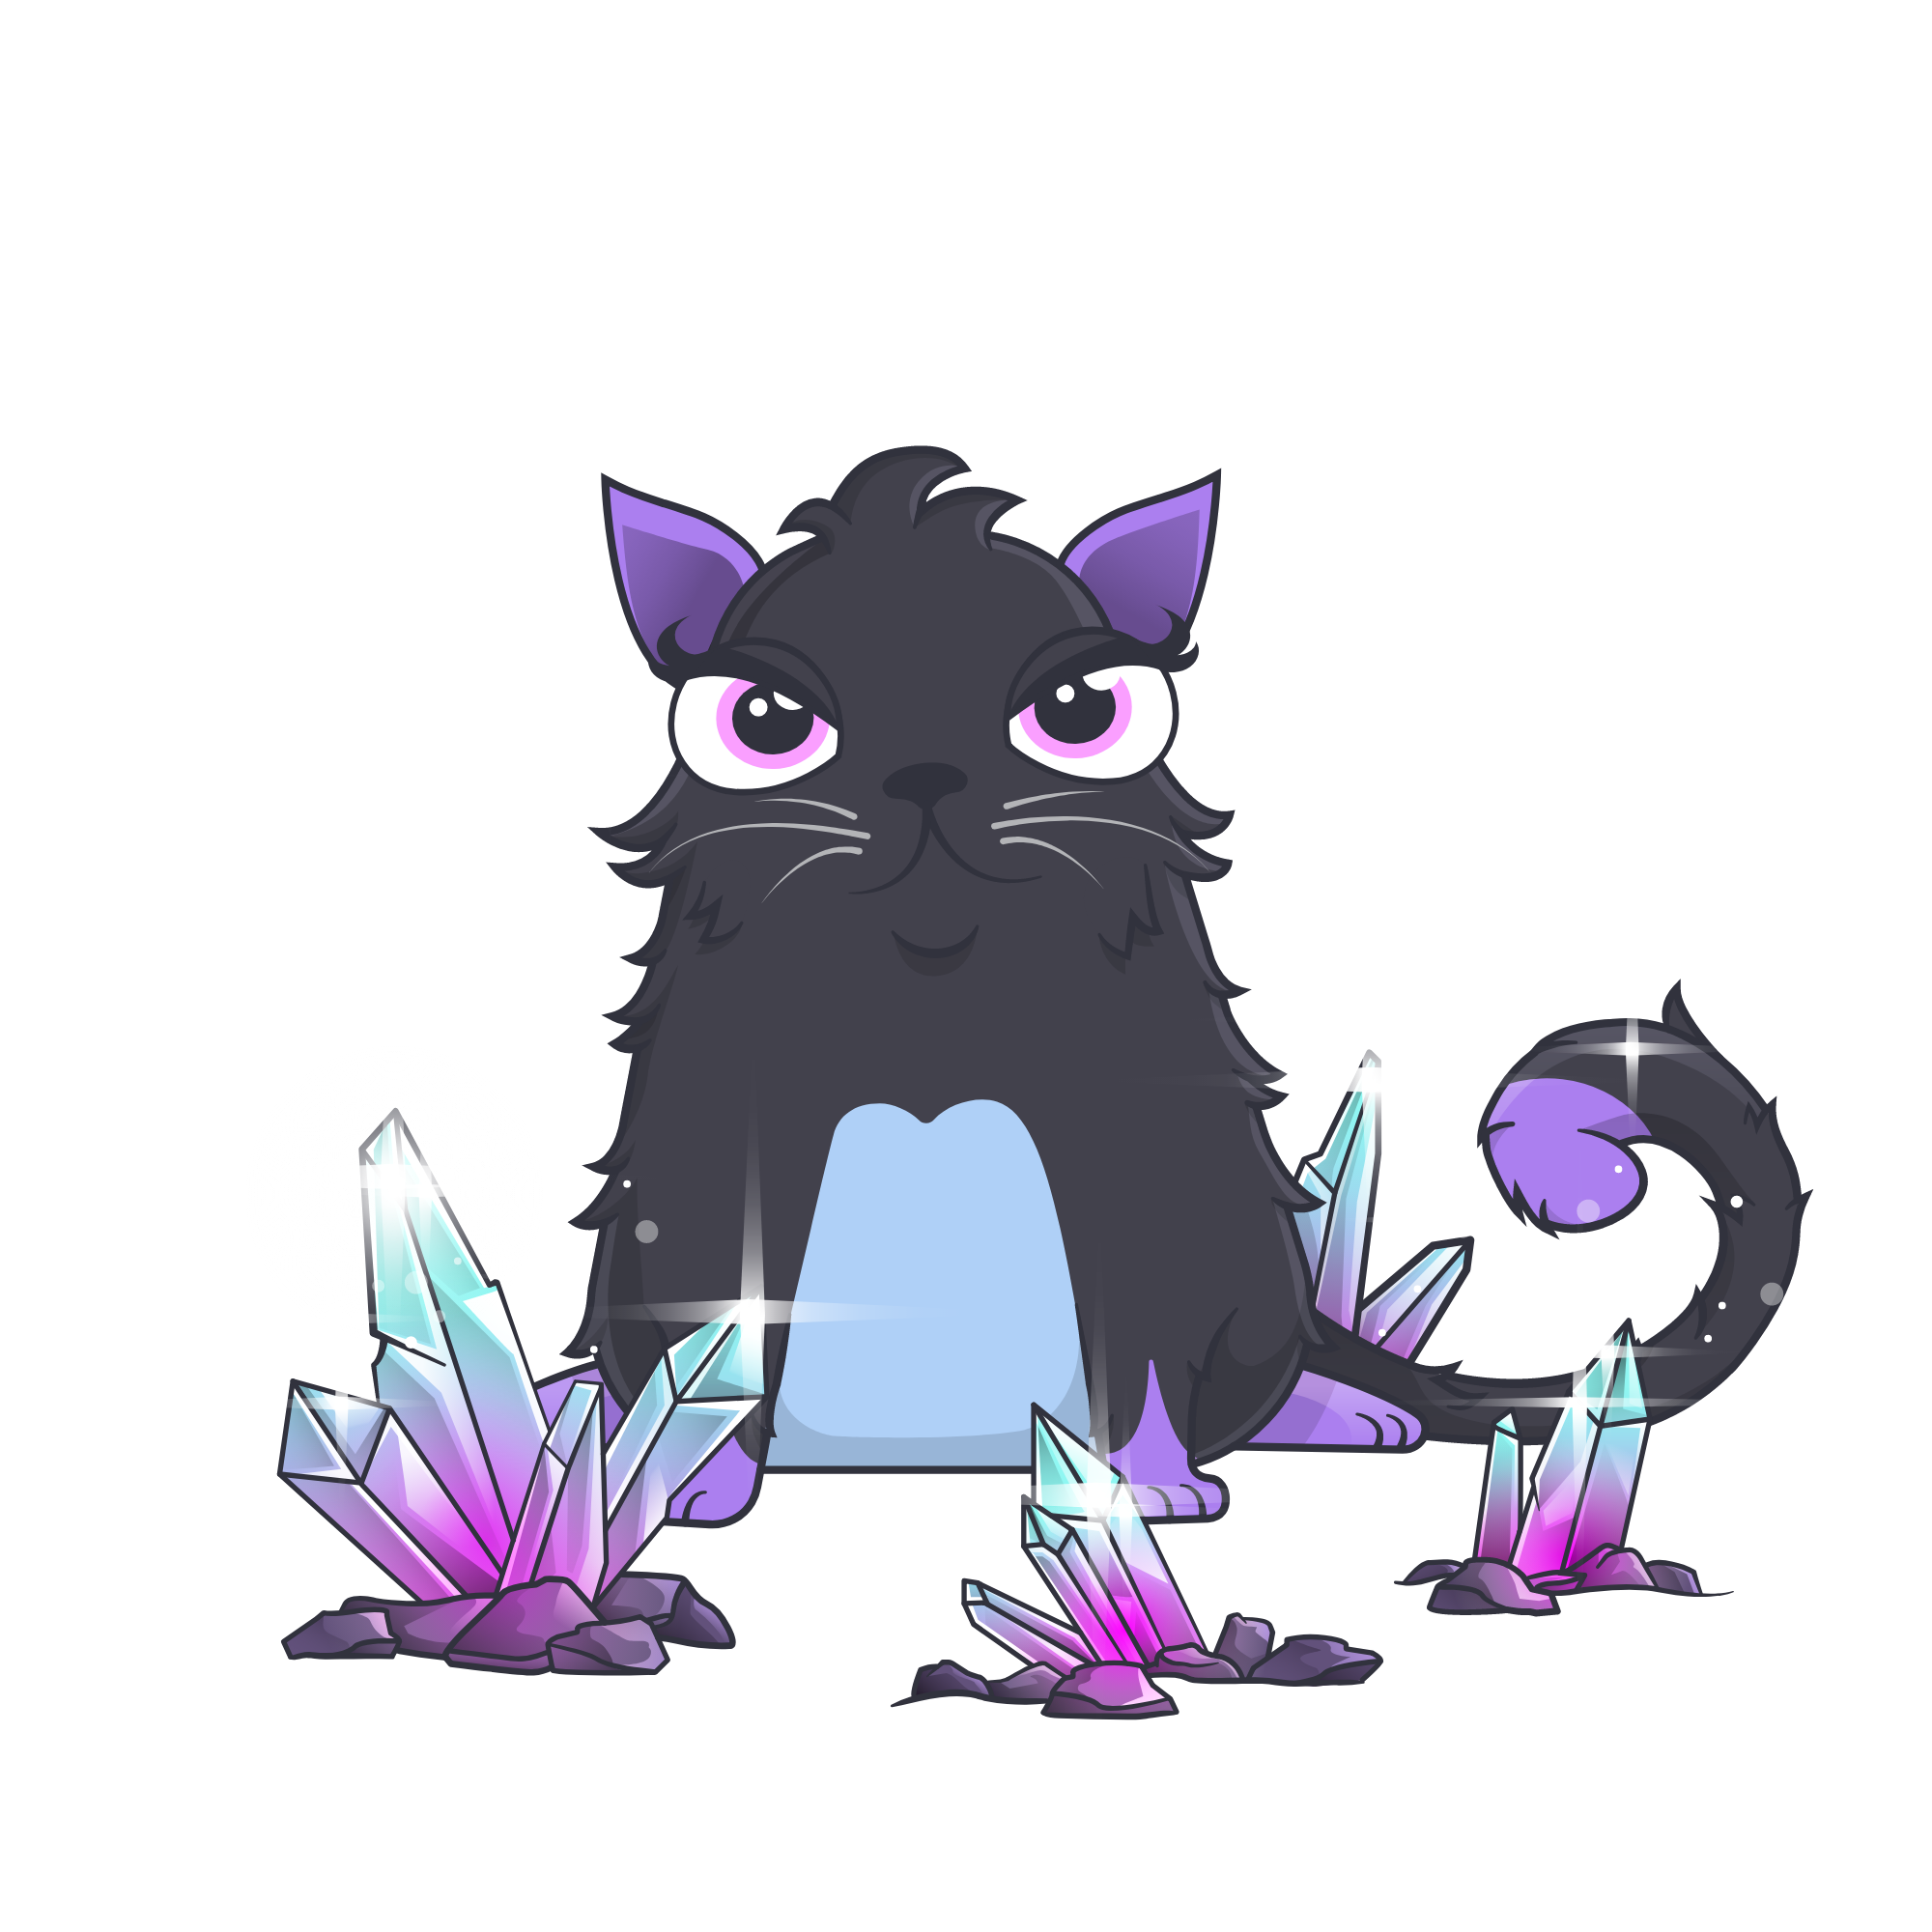 cryptokitty #1951443